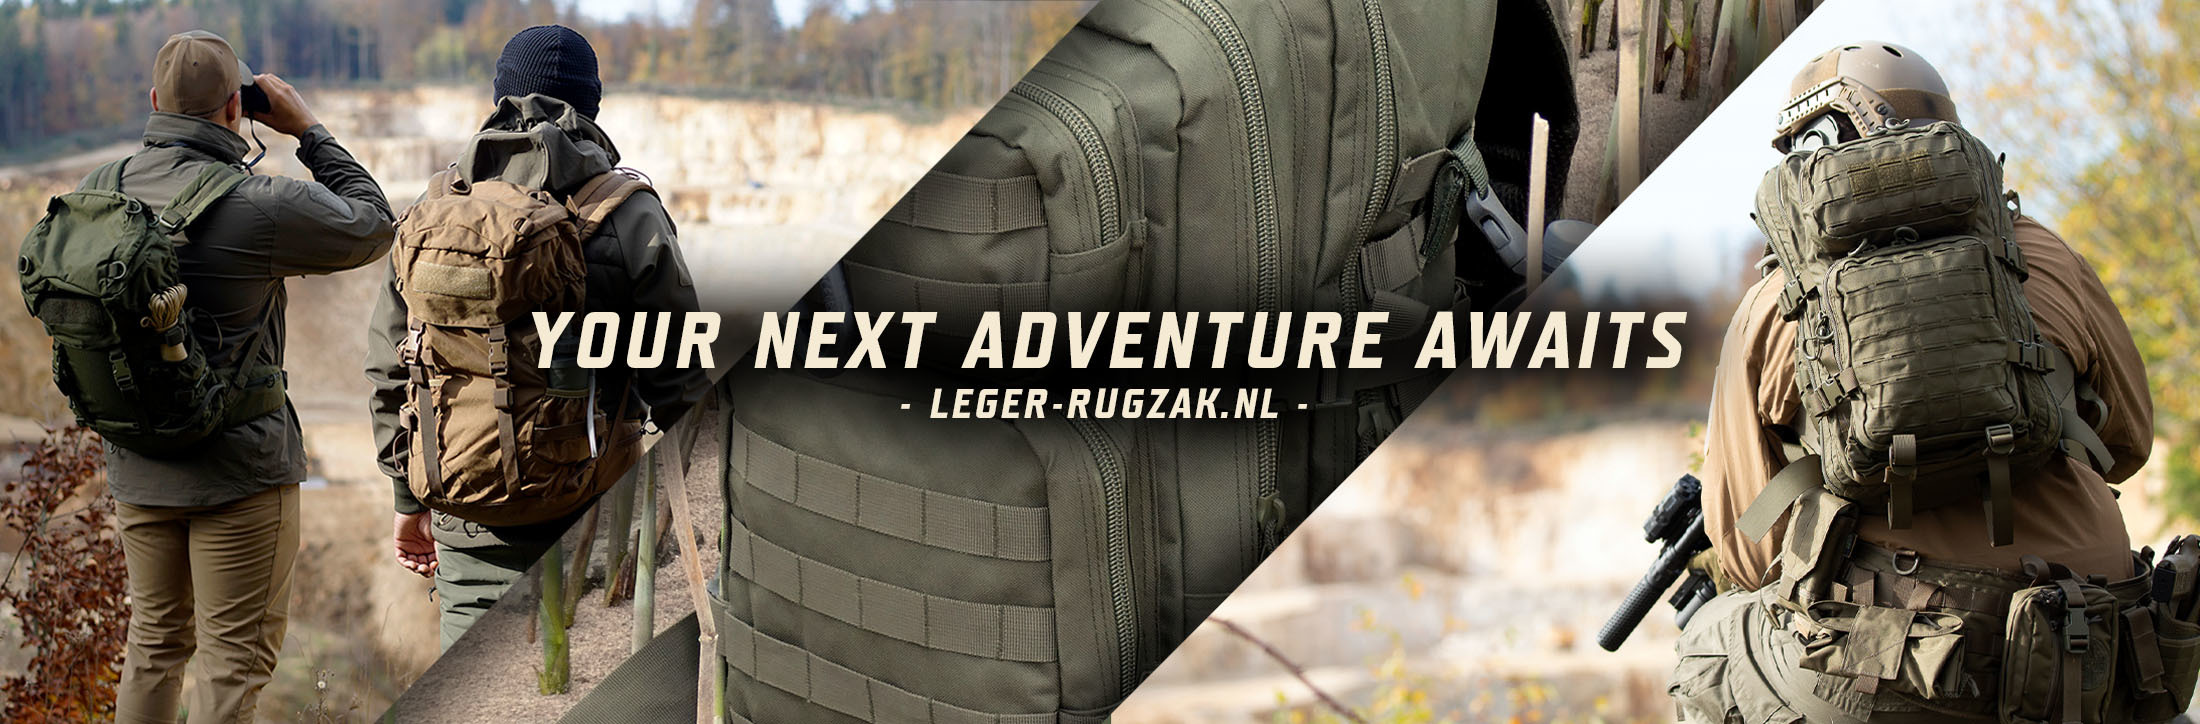 Leger-rugzak.nl - Your next adventure awaits